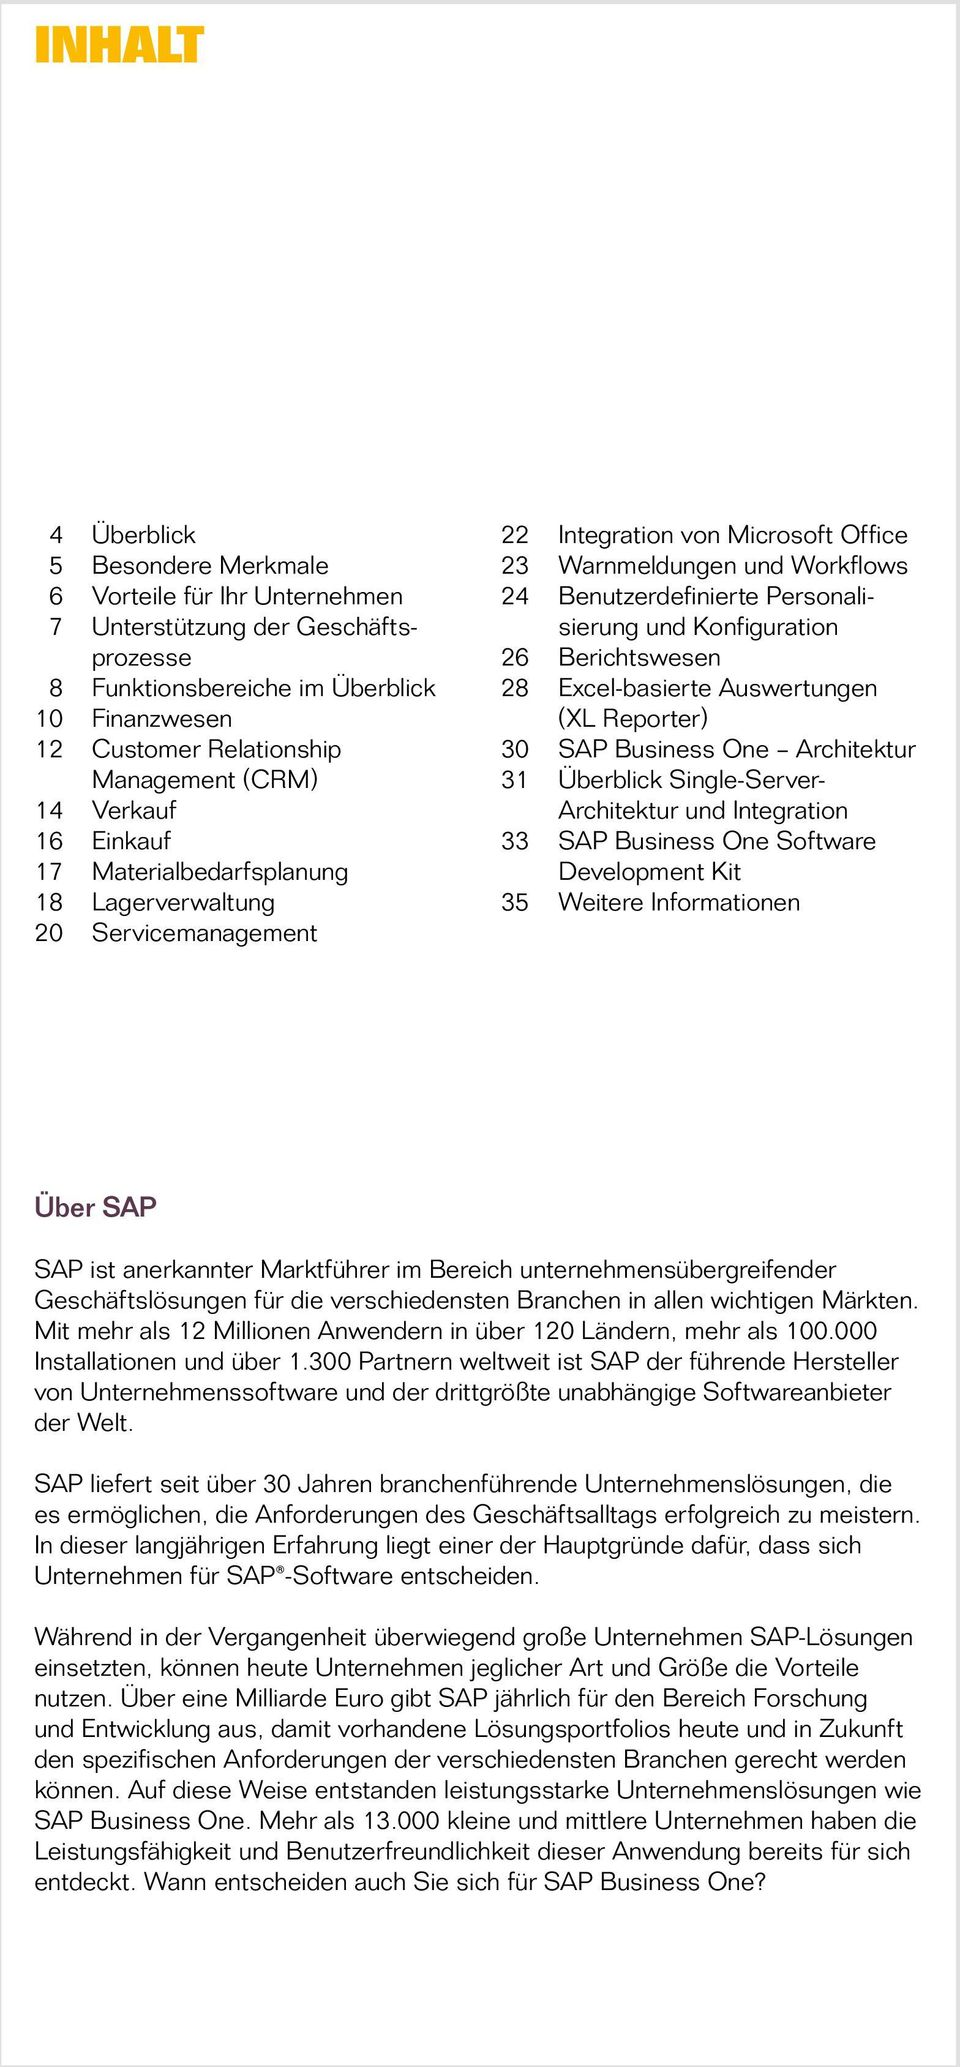 Konfiguration 26 Berichtswesen 28 Excel-basierte Auswertungen (XL Reporter) 30 SAP Business One Architektur 31 Überblick Single-Serverarchitektur und Integration 33 SAP Business One Software